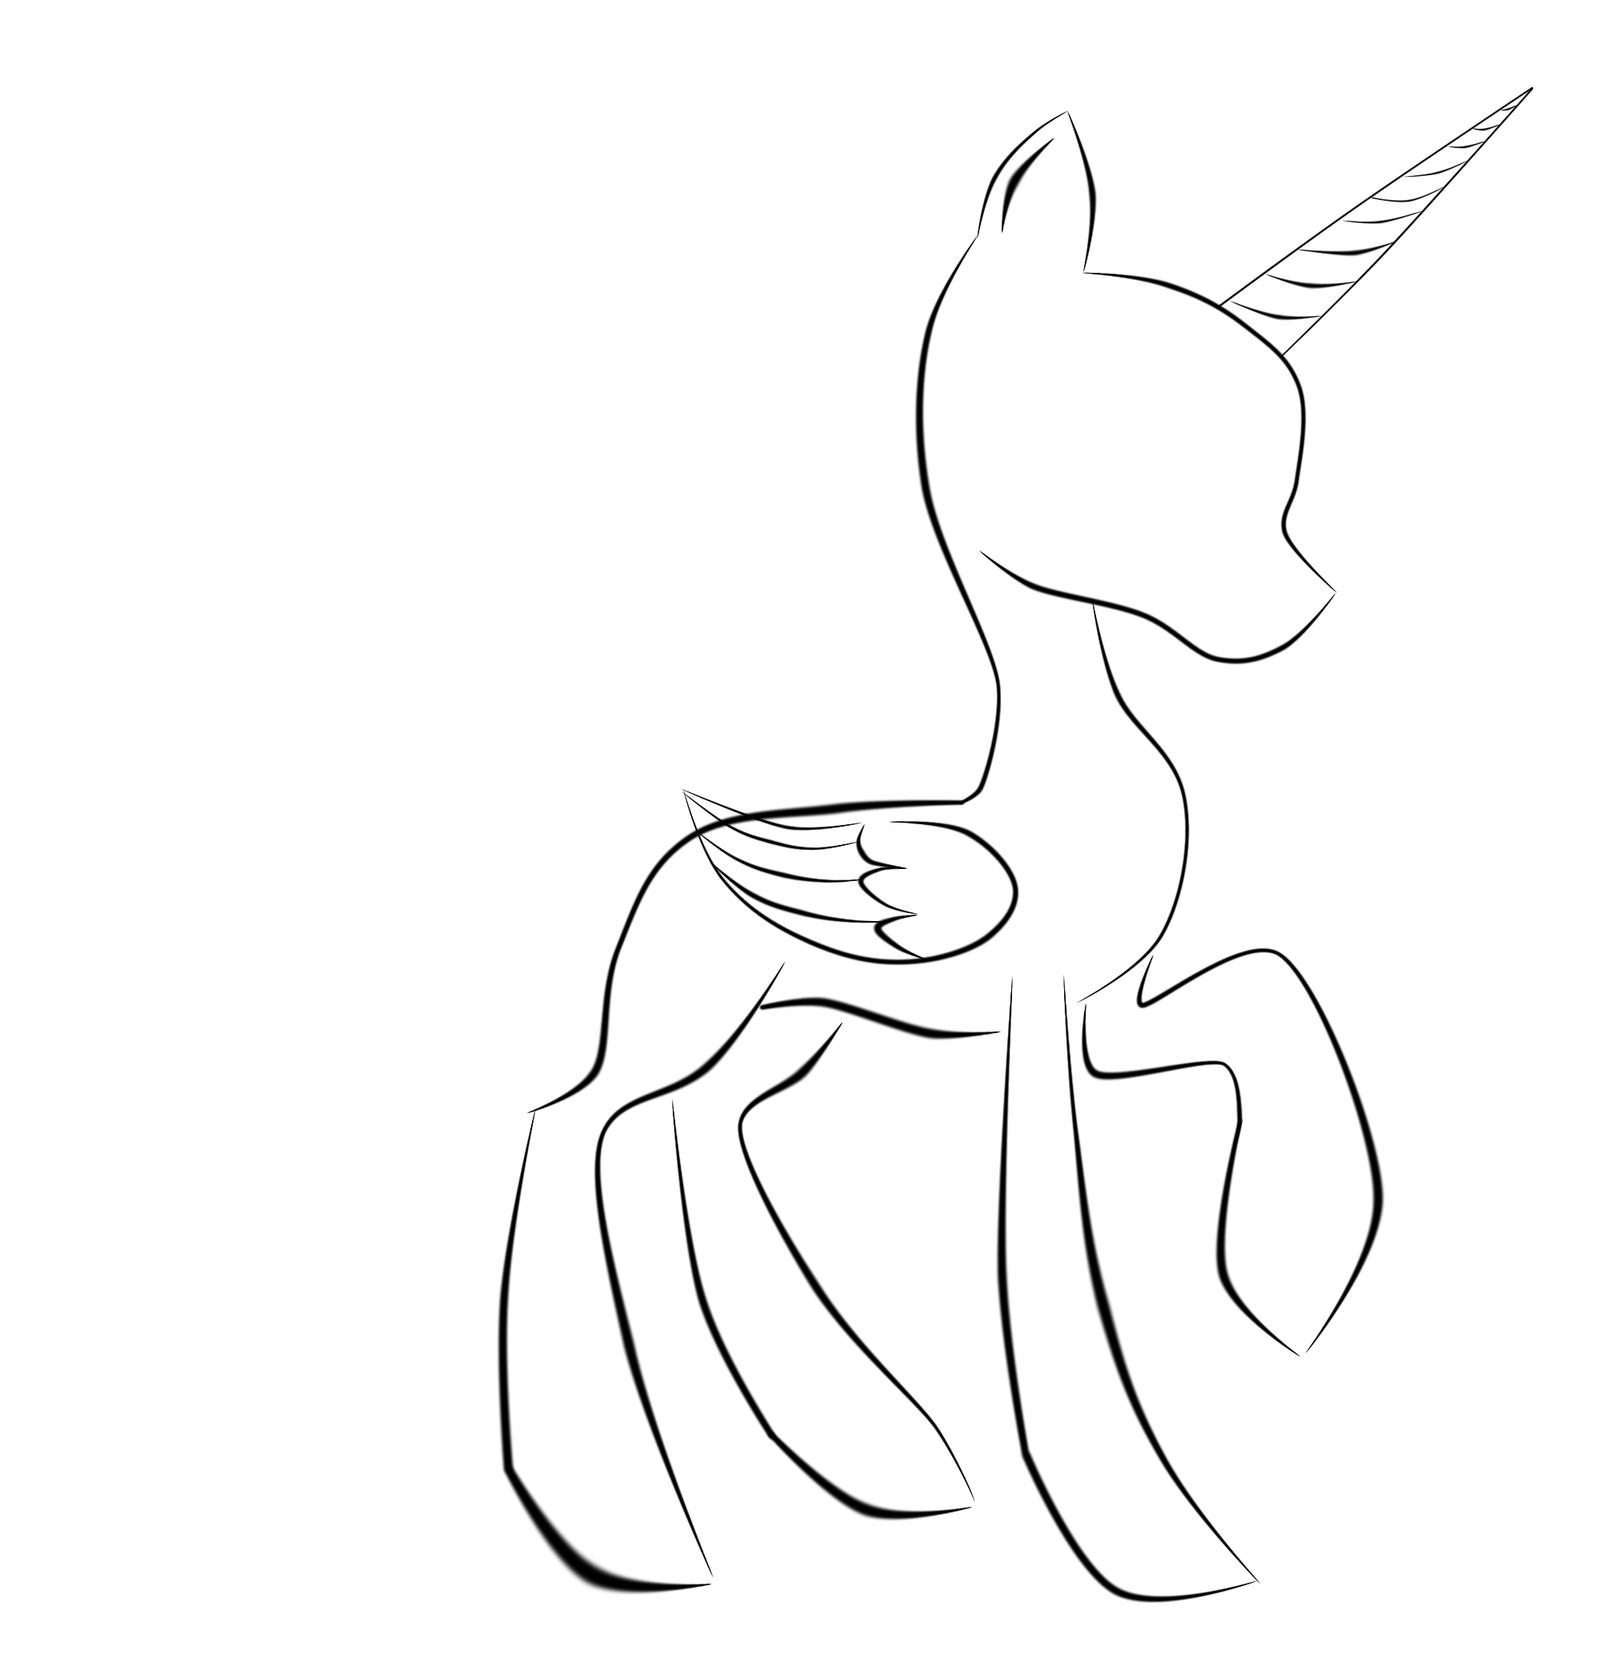 Dibujos De Personajes De Equestria likewise My Little Pony Desenhos Para Colorir E together with MLP FiM Changeling Minion Lineart 307809744 in addition O SE HACEN LAS OC further Adagio Dazzle. on rainbow power twilight sparkle